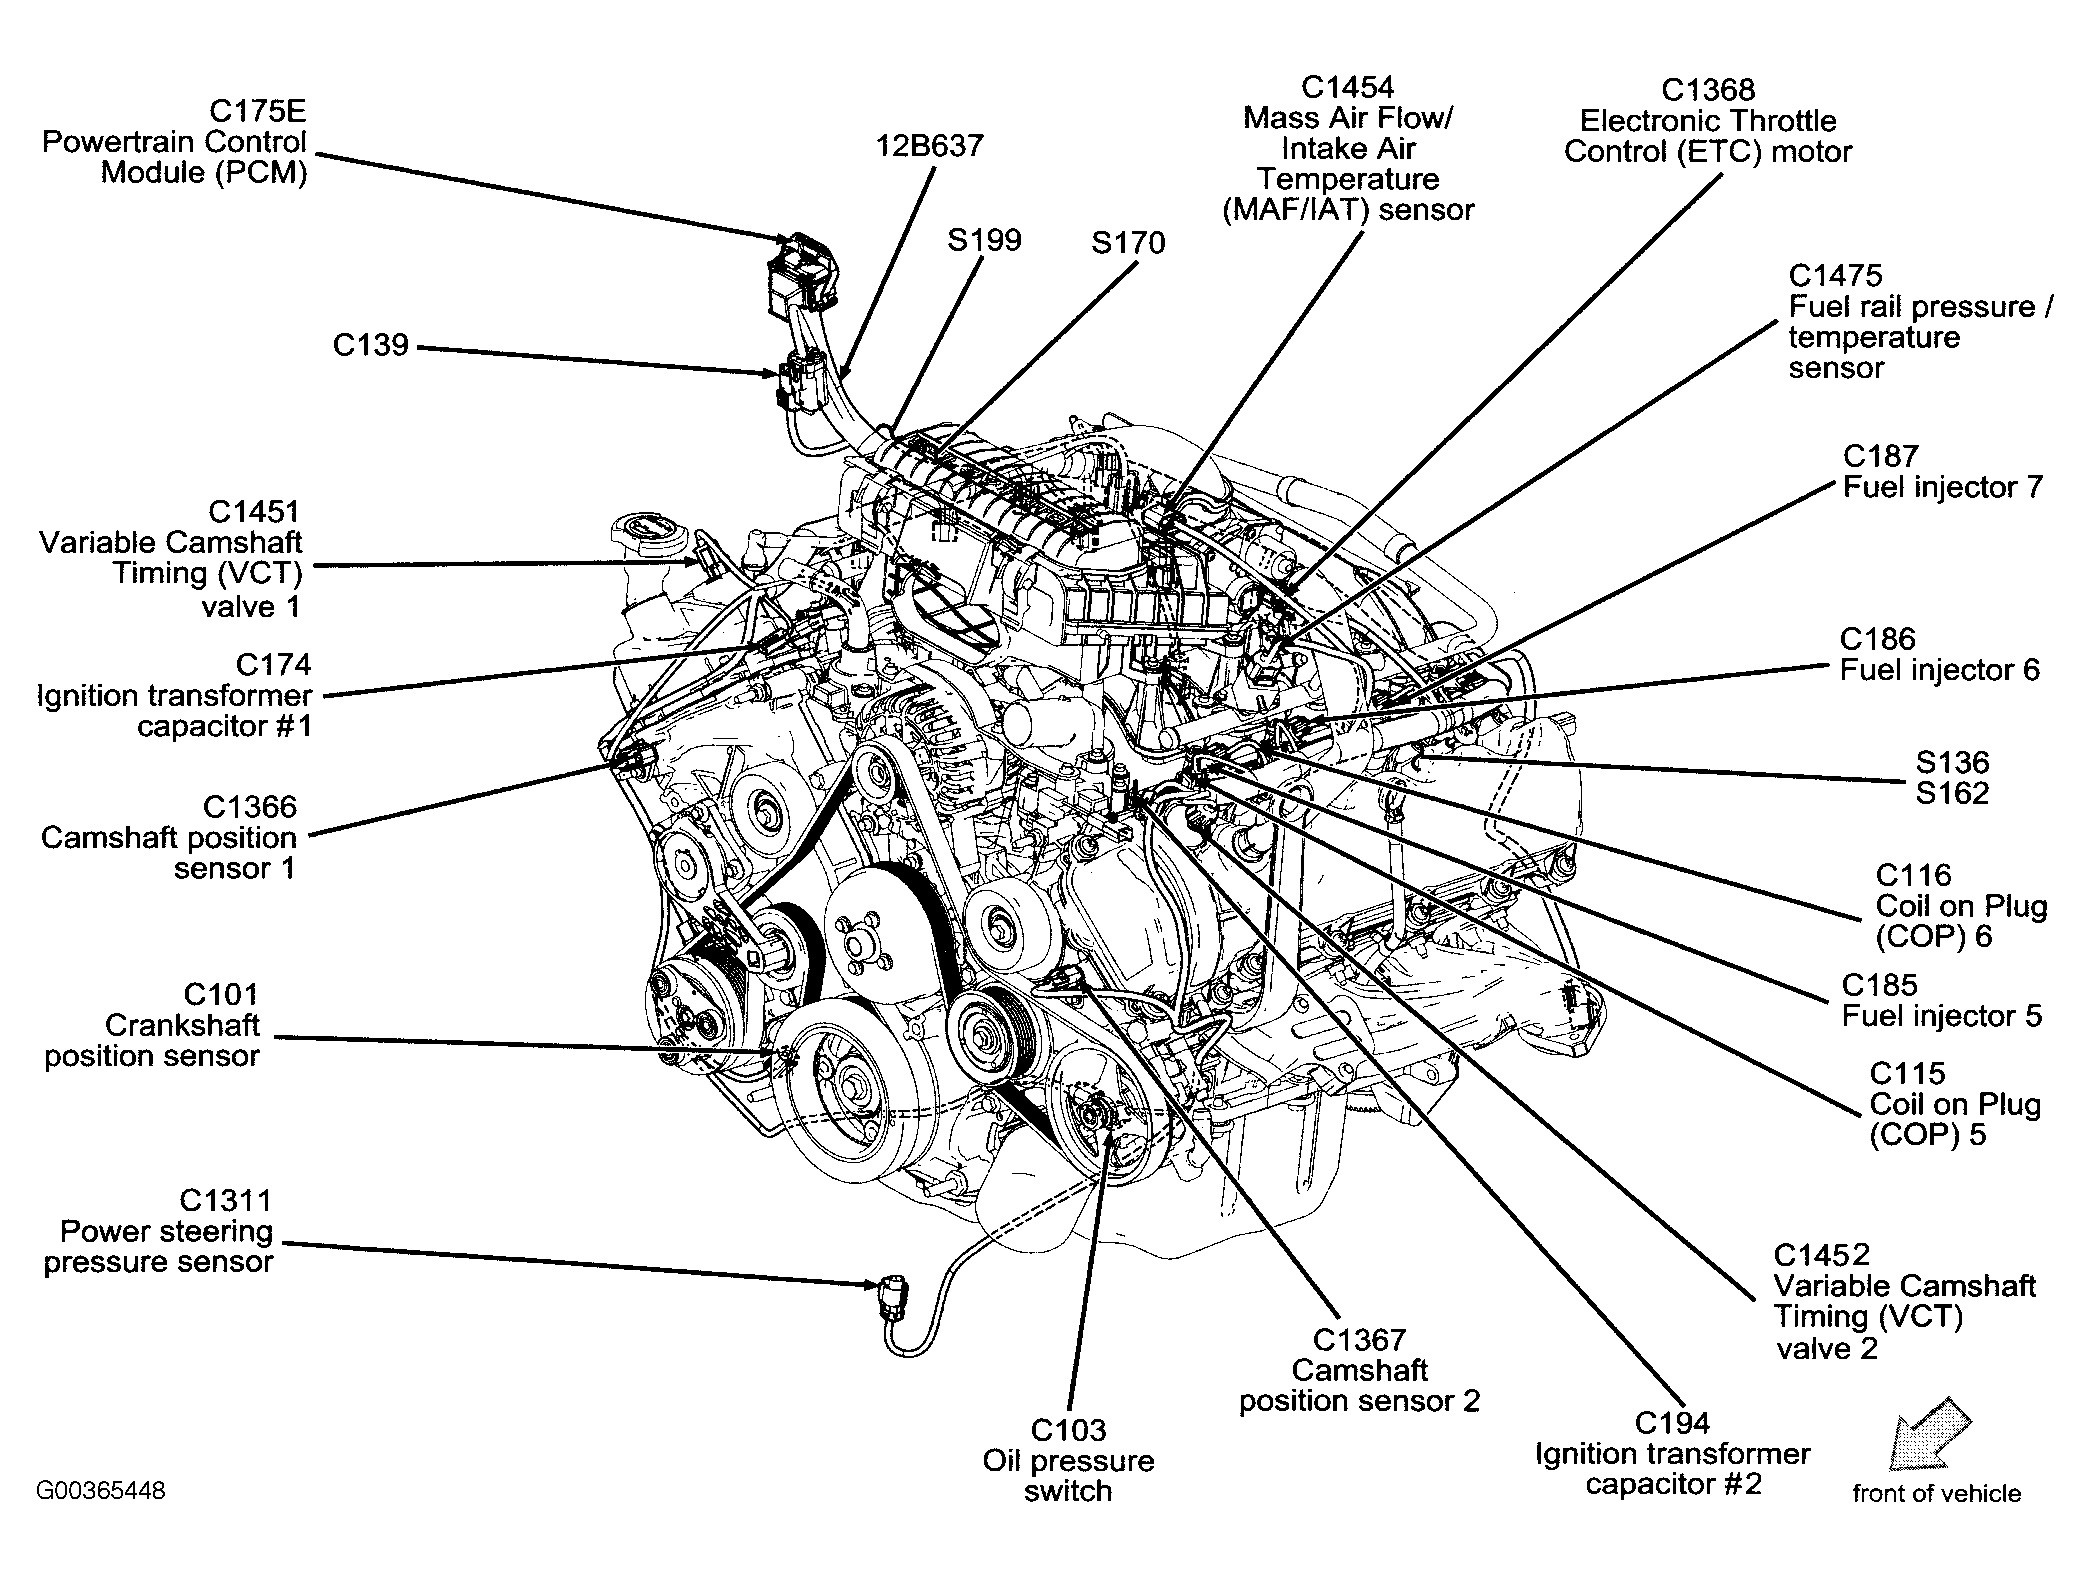 2006 ford 4.0l engine diagram 2006 ford mustang 4 0 serpentine belt diagram  2006 ford mustang 4 0 serpentine belt